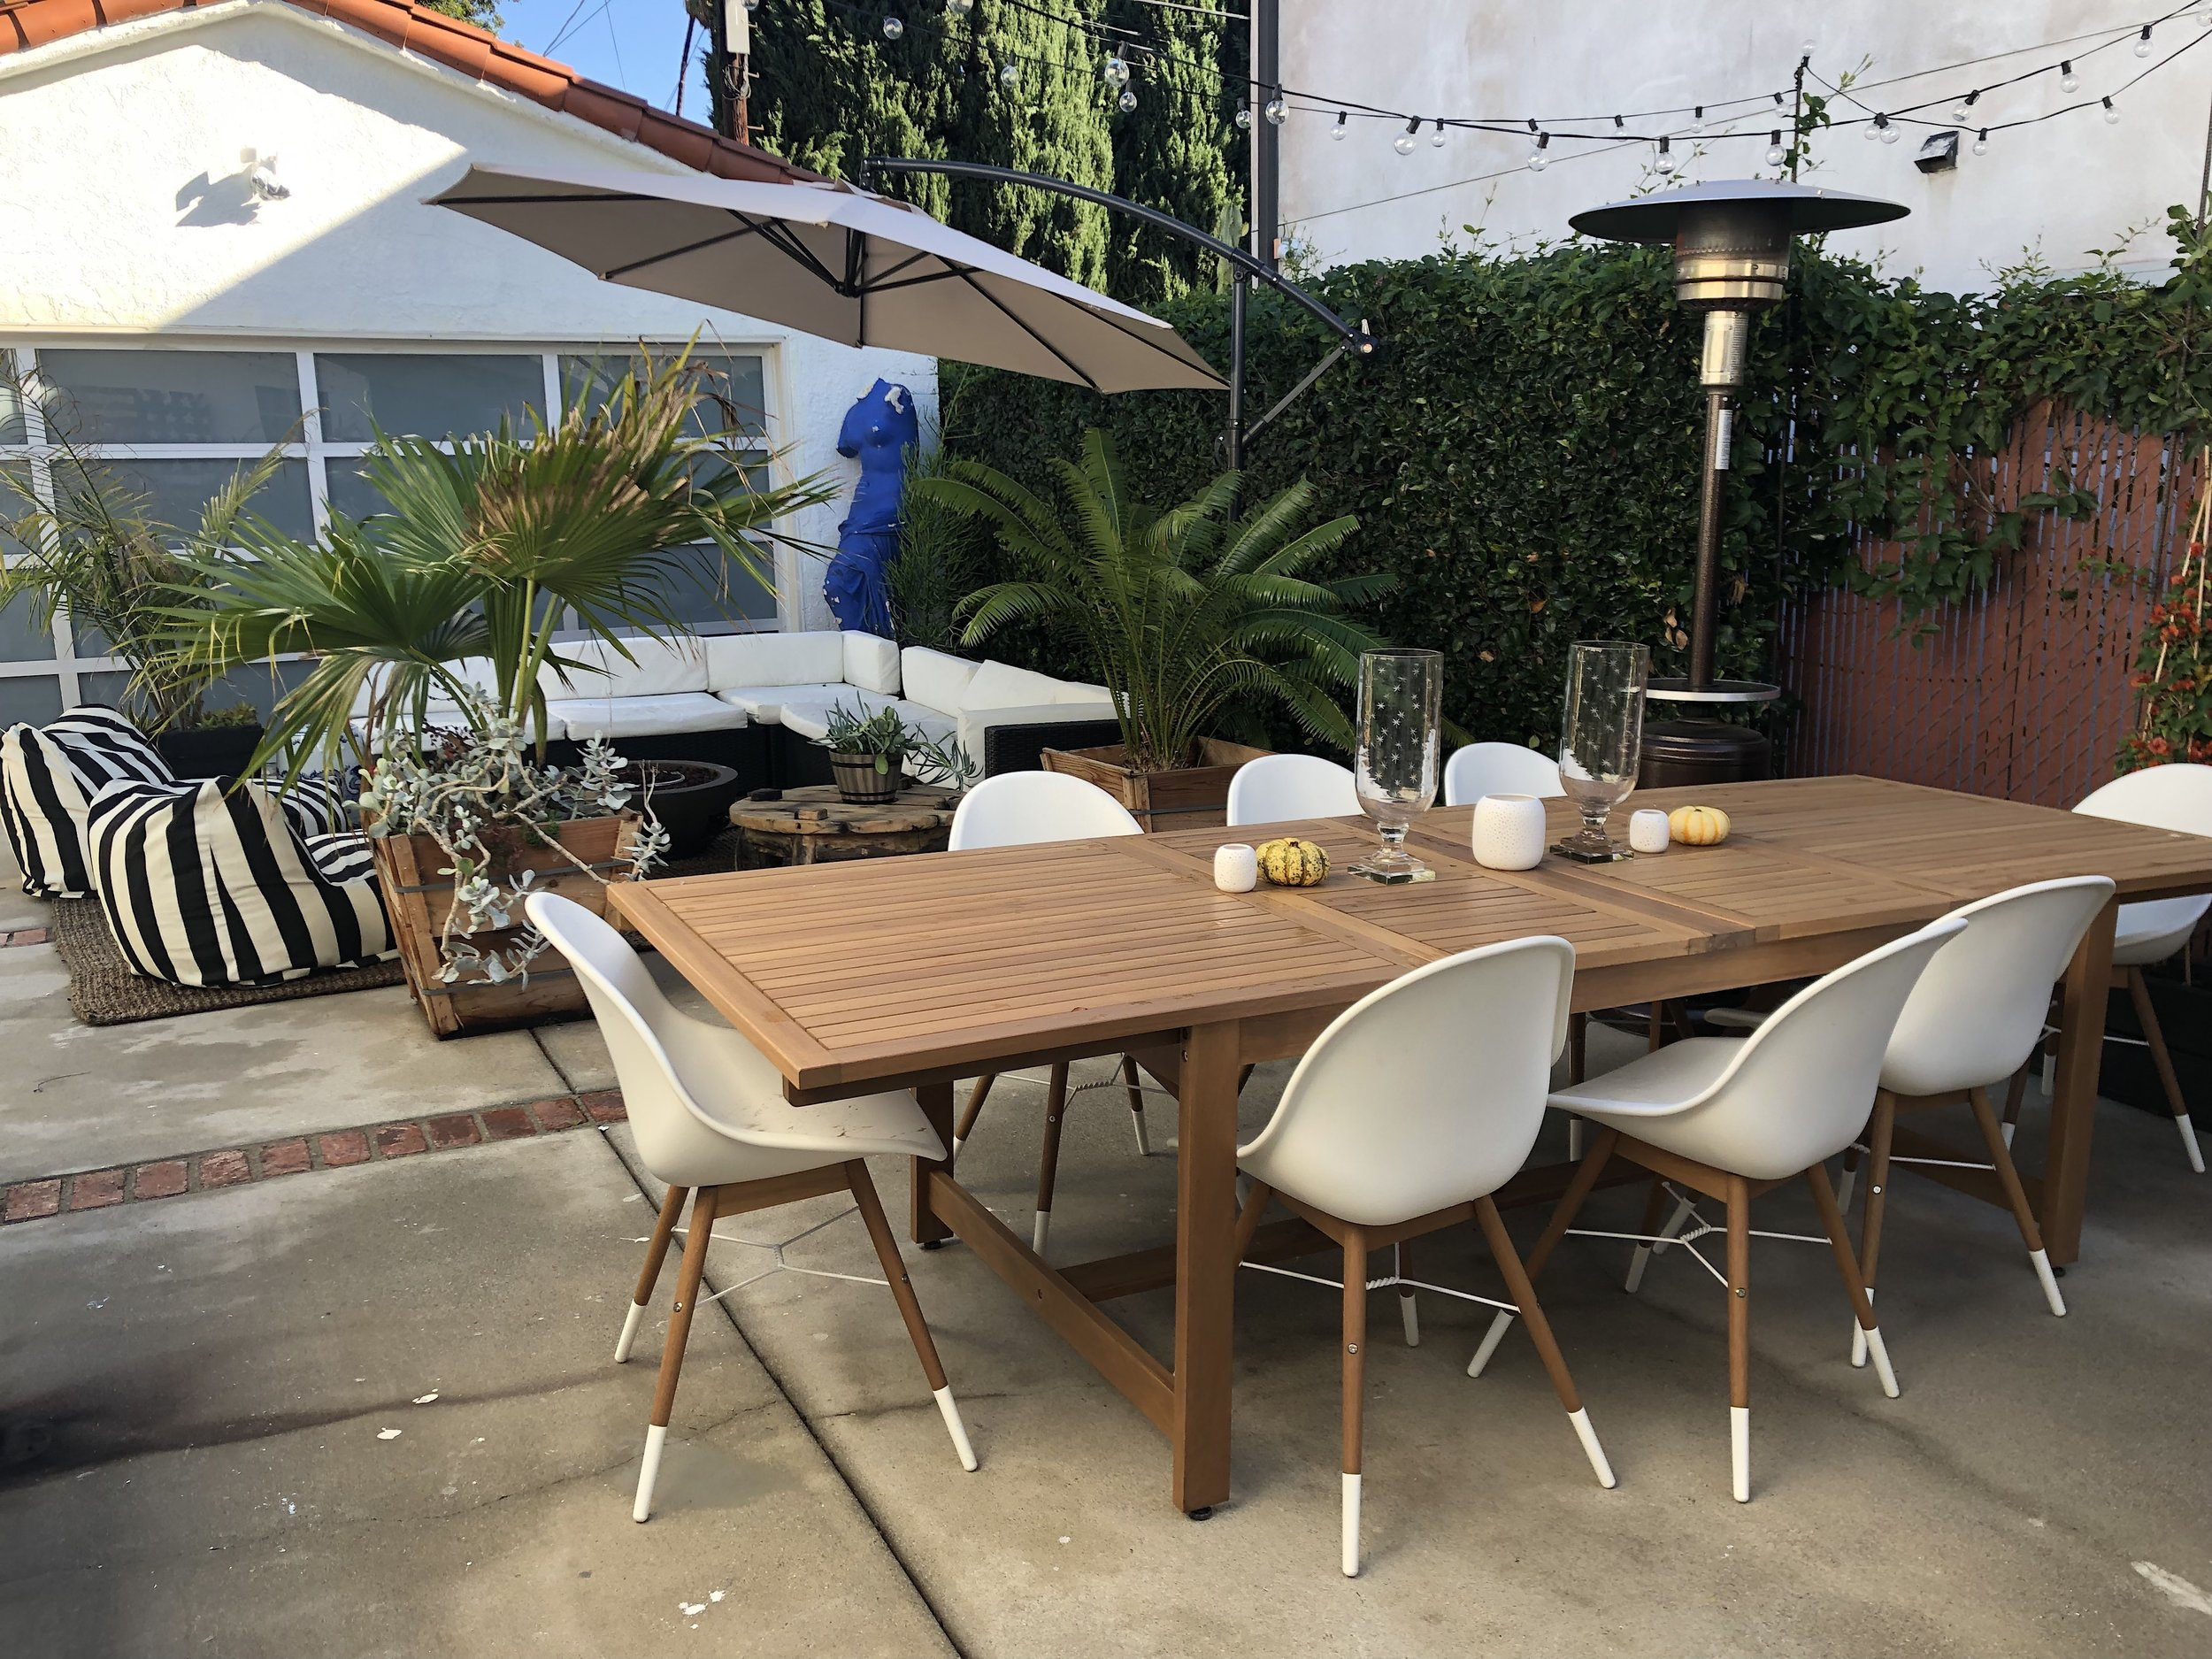 Copy of after - outdoor dining